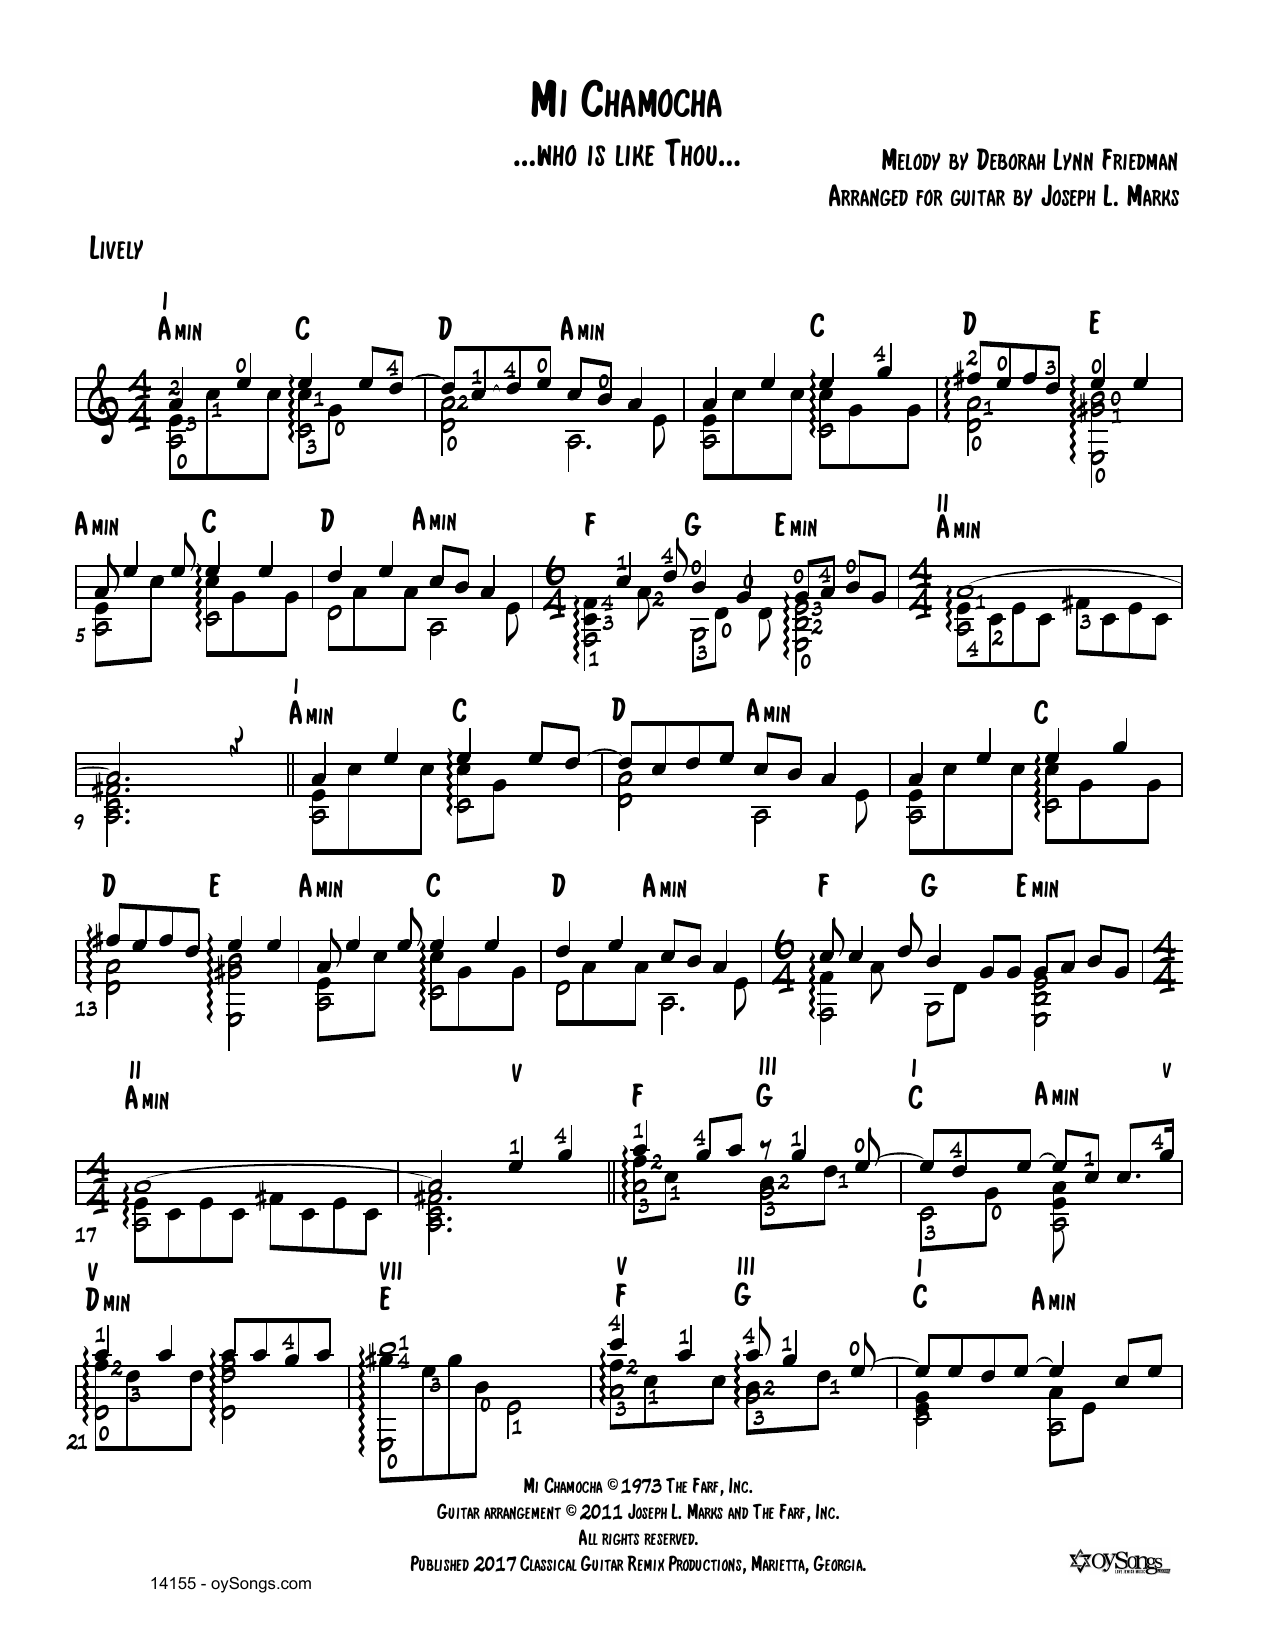 Debbie Friedman Mi Chamocha (arr. Joe Marks) sheet music preview music notes and score for Solo Guitar Tab including 2 page(s)